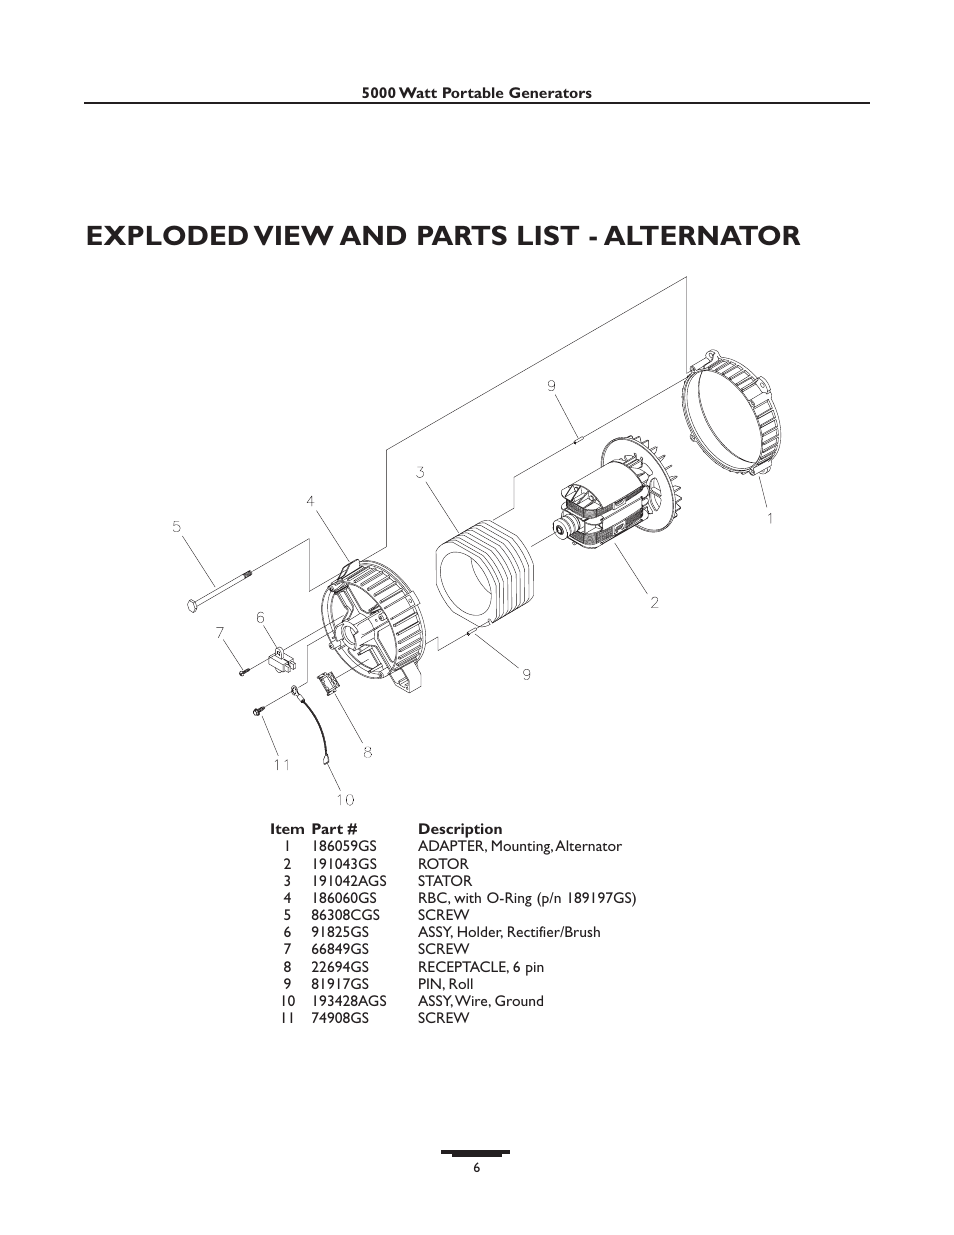 Exploded view and parts list - alternator | Briggs